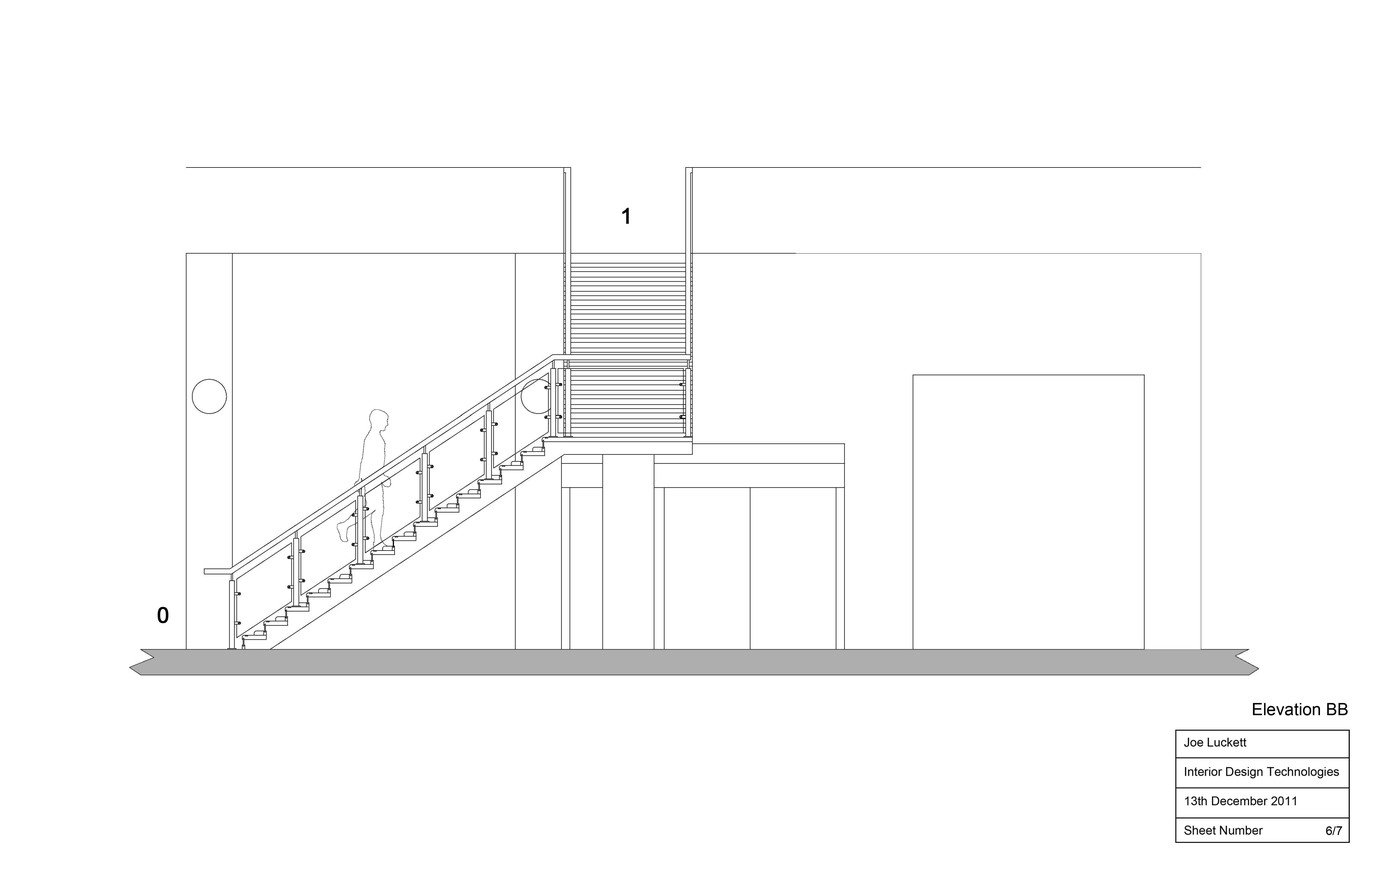 Staircase Working Drawings by Joe Luckett at Coroflot.com